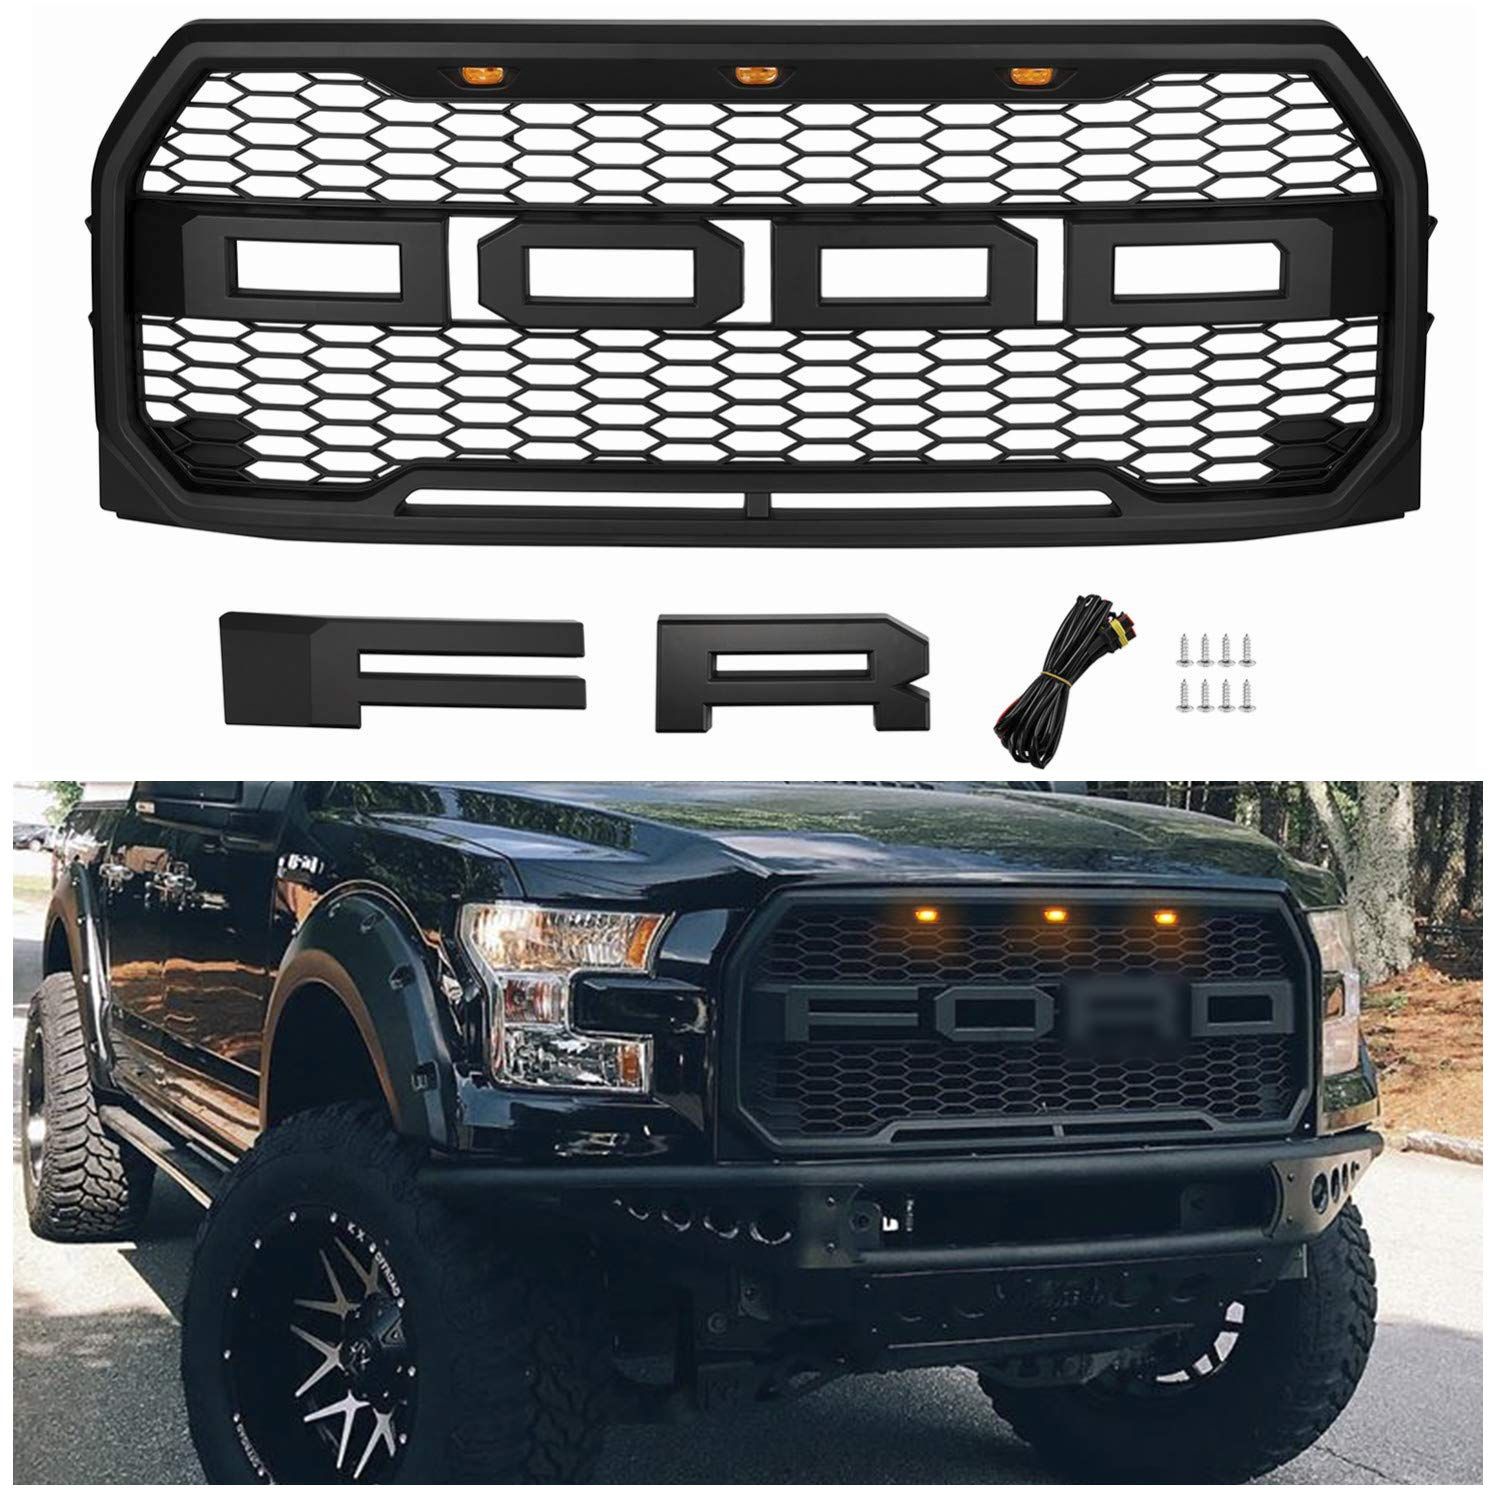 Seven Sparta Front Grill For F150 2015 2016 2017 Raptor Style Grill For Ford 15 17 Matte Black